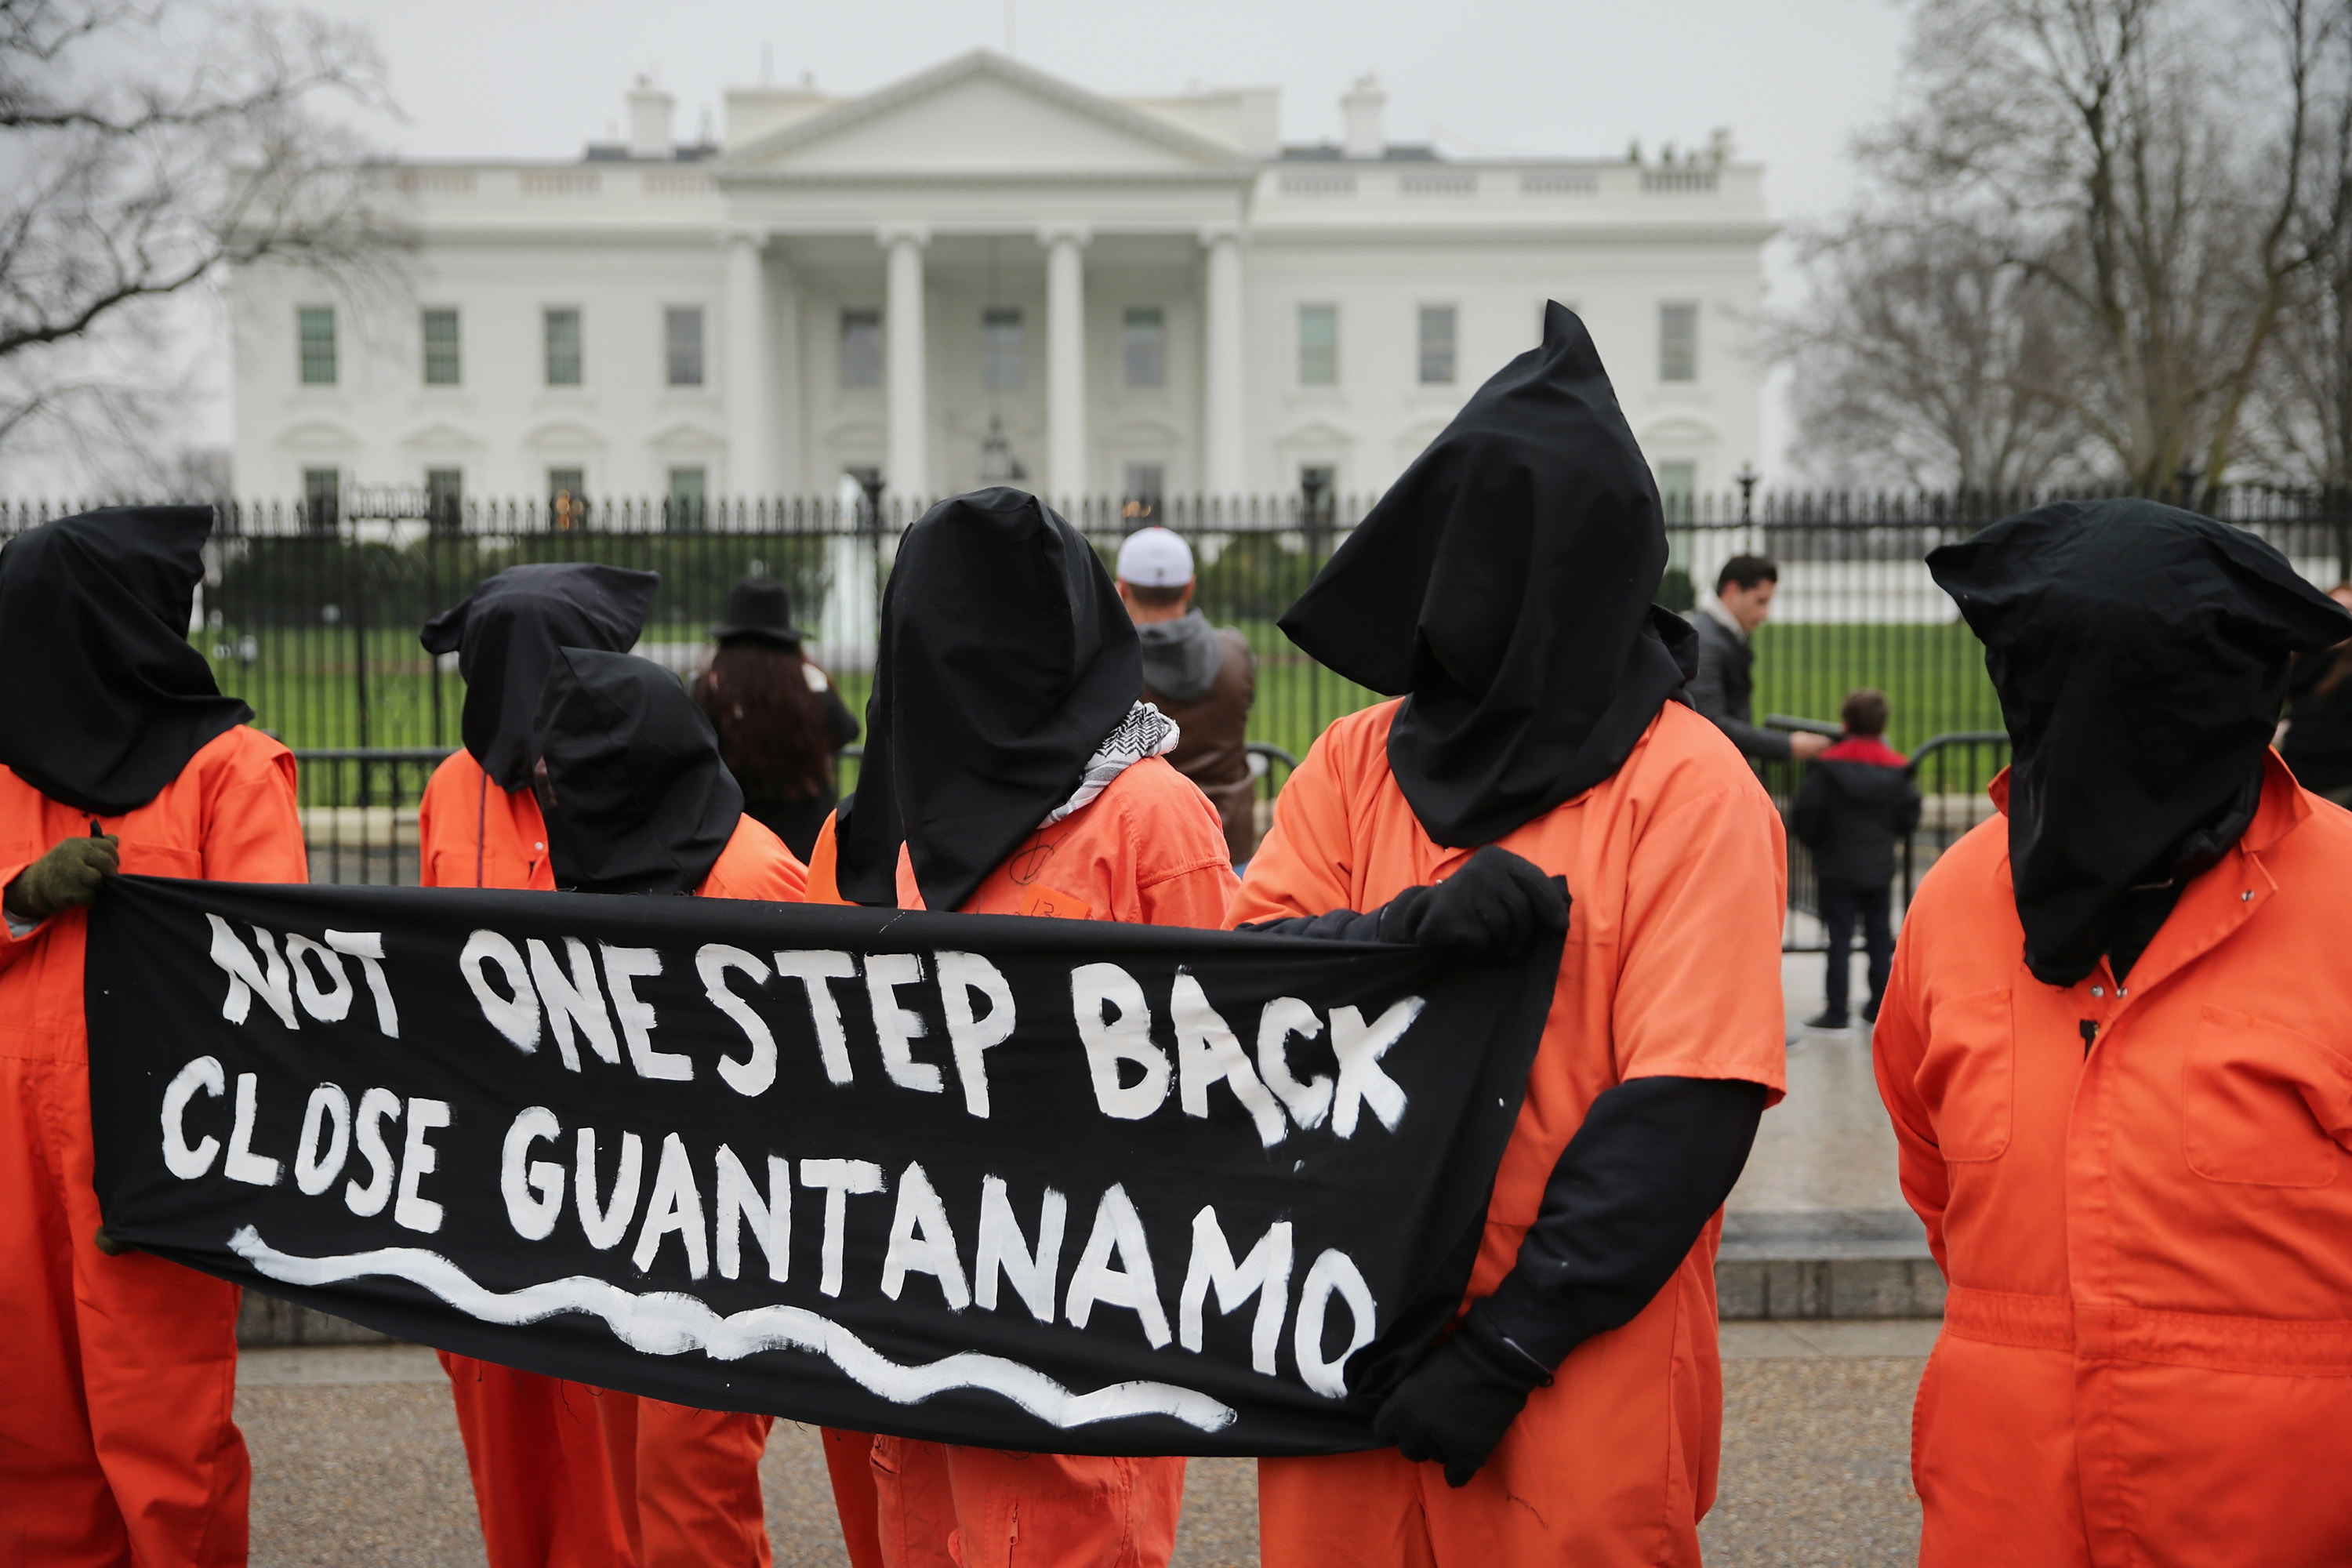 Demonstrators with the group Witness Against Torture dress in orange jumpsuits and wear black hoods while demanding that U.S. President Barack Obama close the military prison in Guantanamo, Cuba, outside the White House in Washington, DC.. on Jan. 8, 2016.